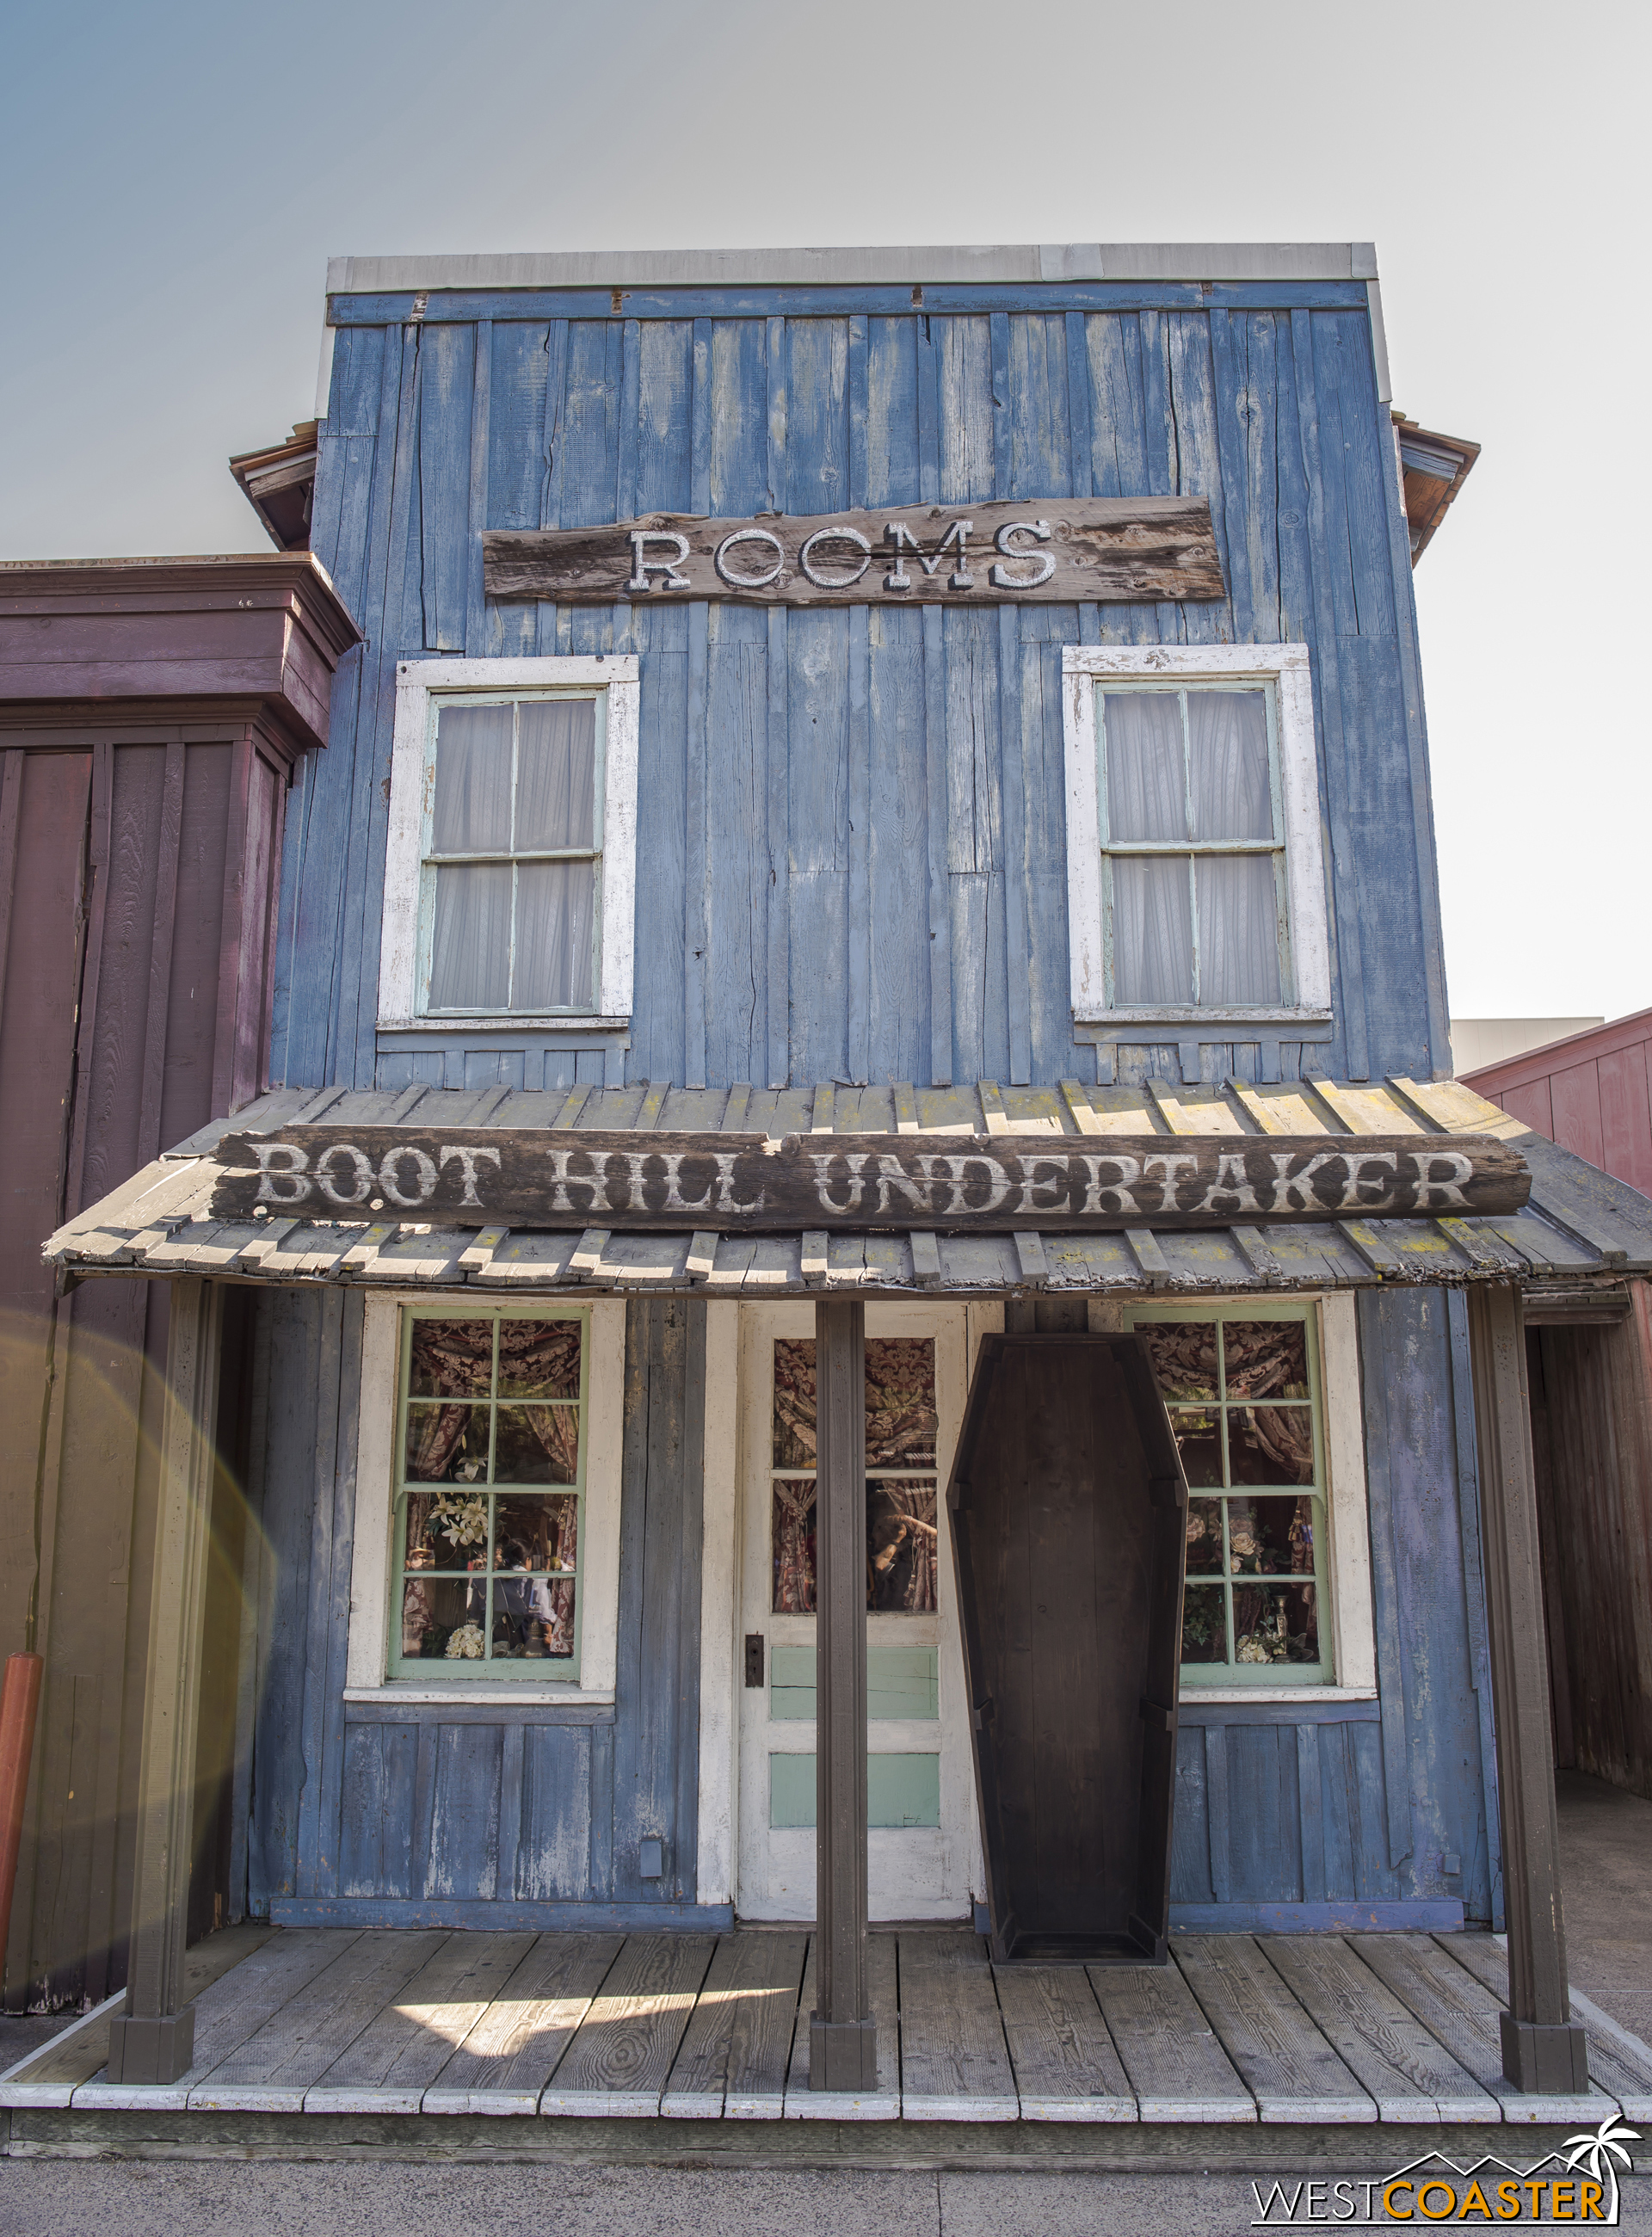 During Haunt, the Boot Hill Undertaker building has a much different feel. But during the day, it's rather welcoming!